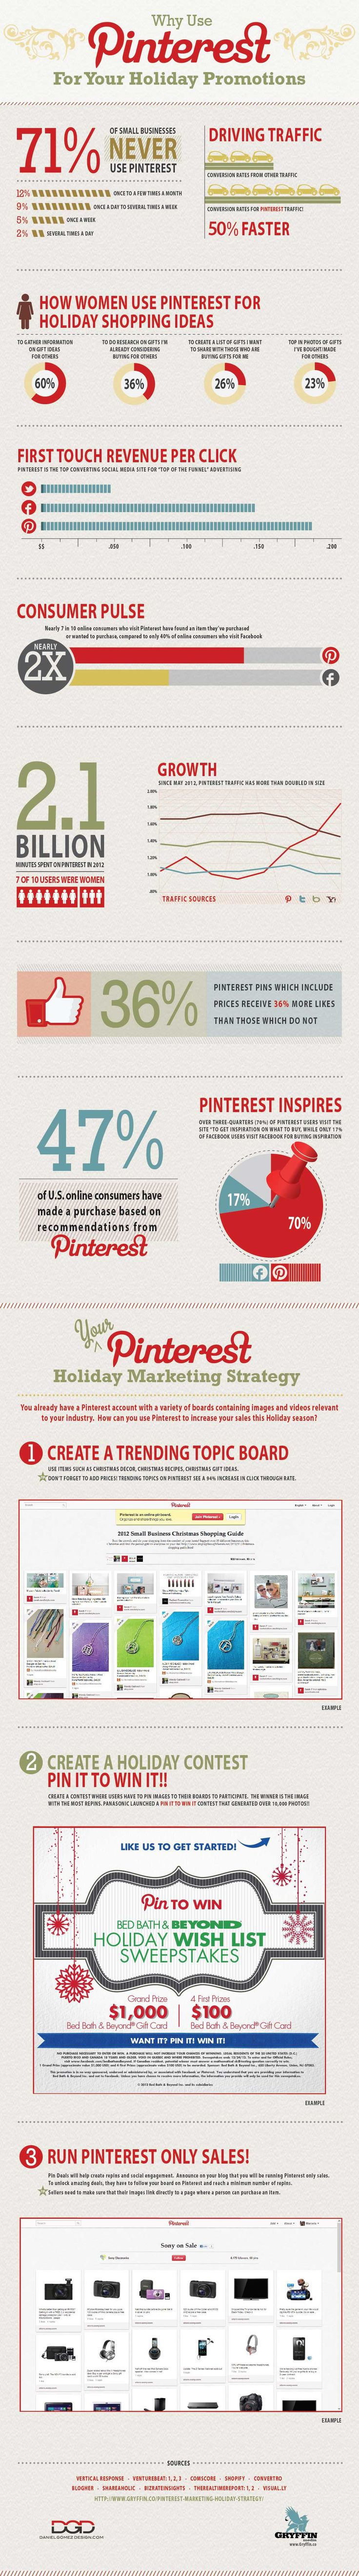 Why use Pinterest for your Holiday Promotions